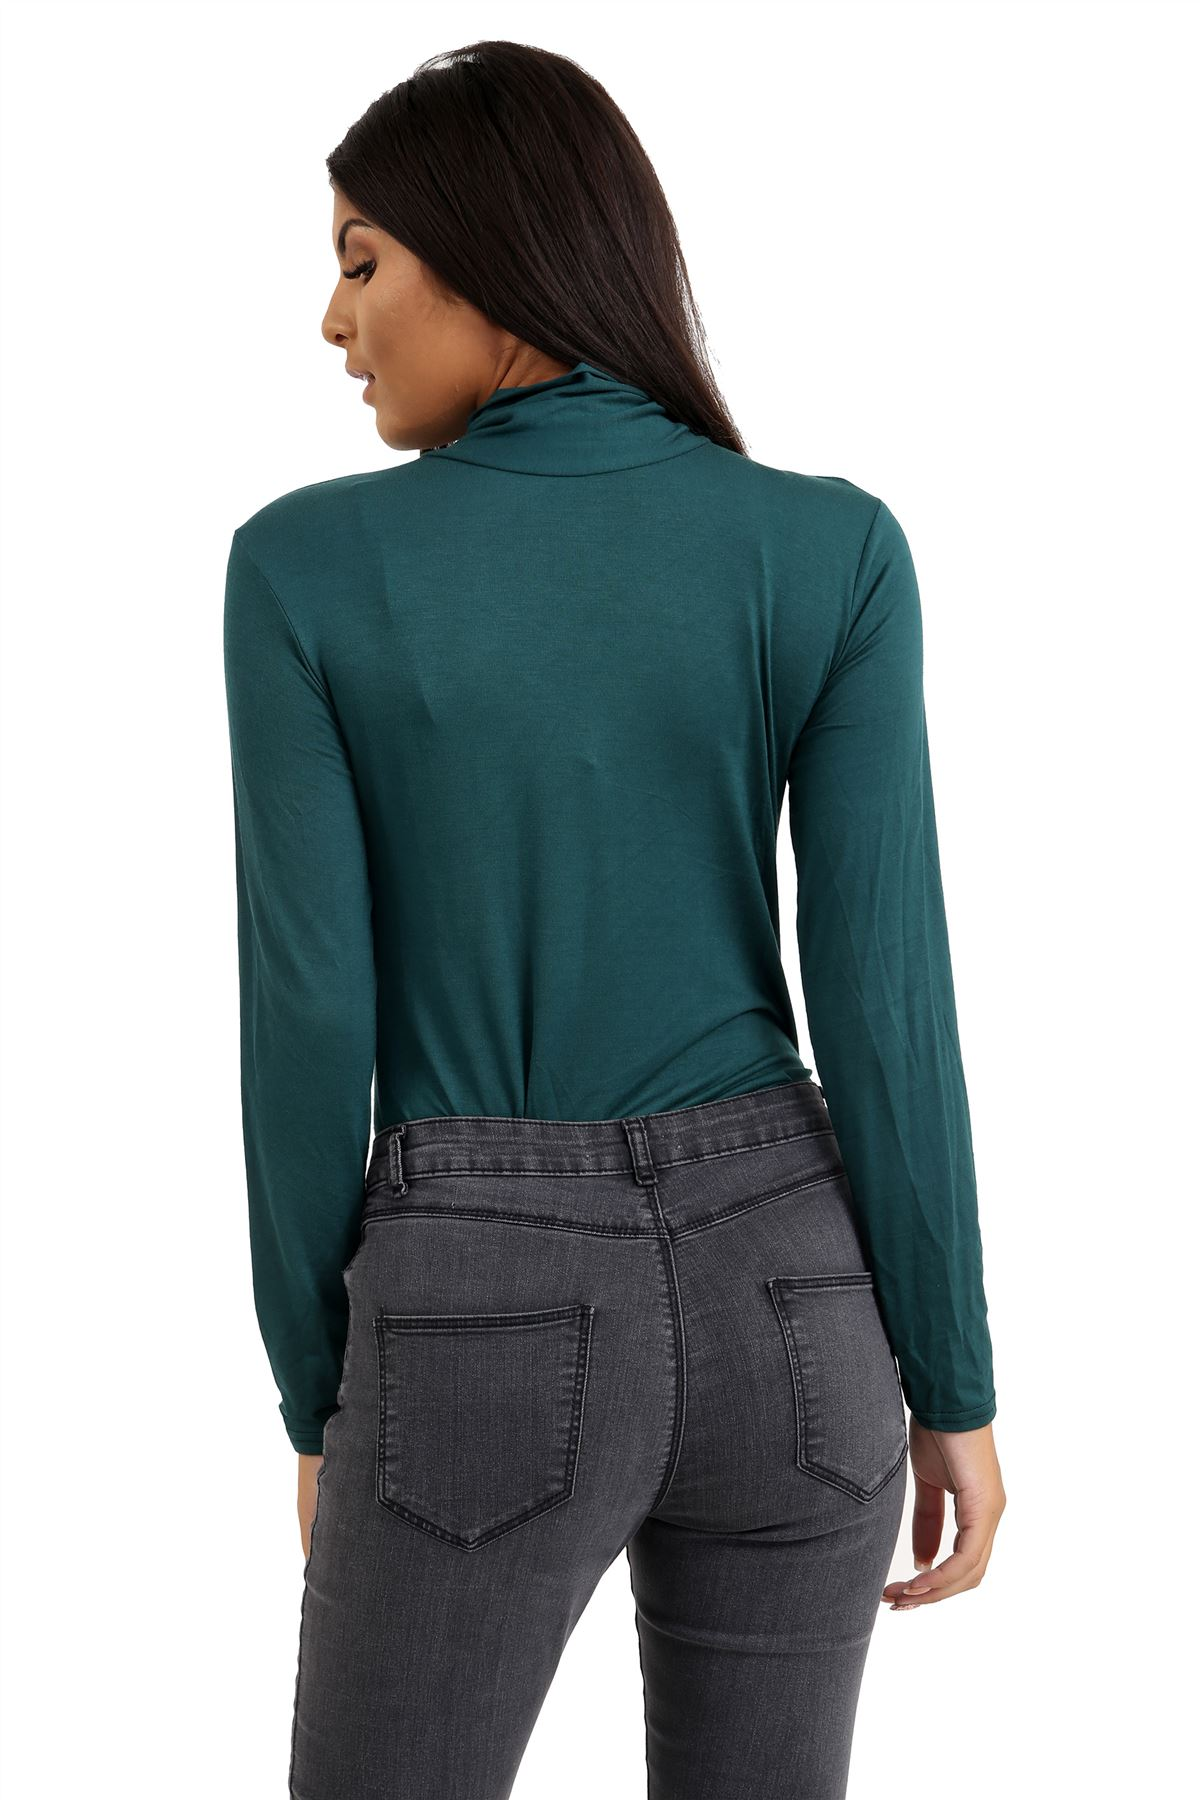 New-Ladies-Long-Sleeve-Plain-Turtle-Polo-Roll-Neck-Stretch-Jumper-T-Shirt-TeeTop thumbnail 8